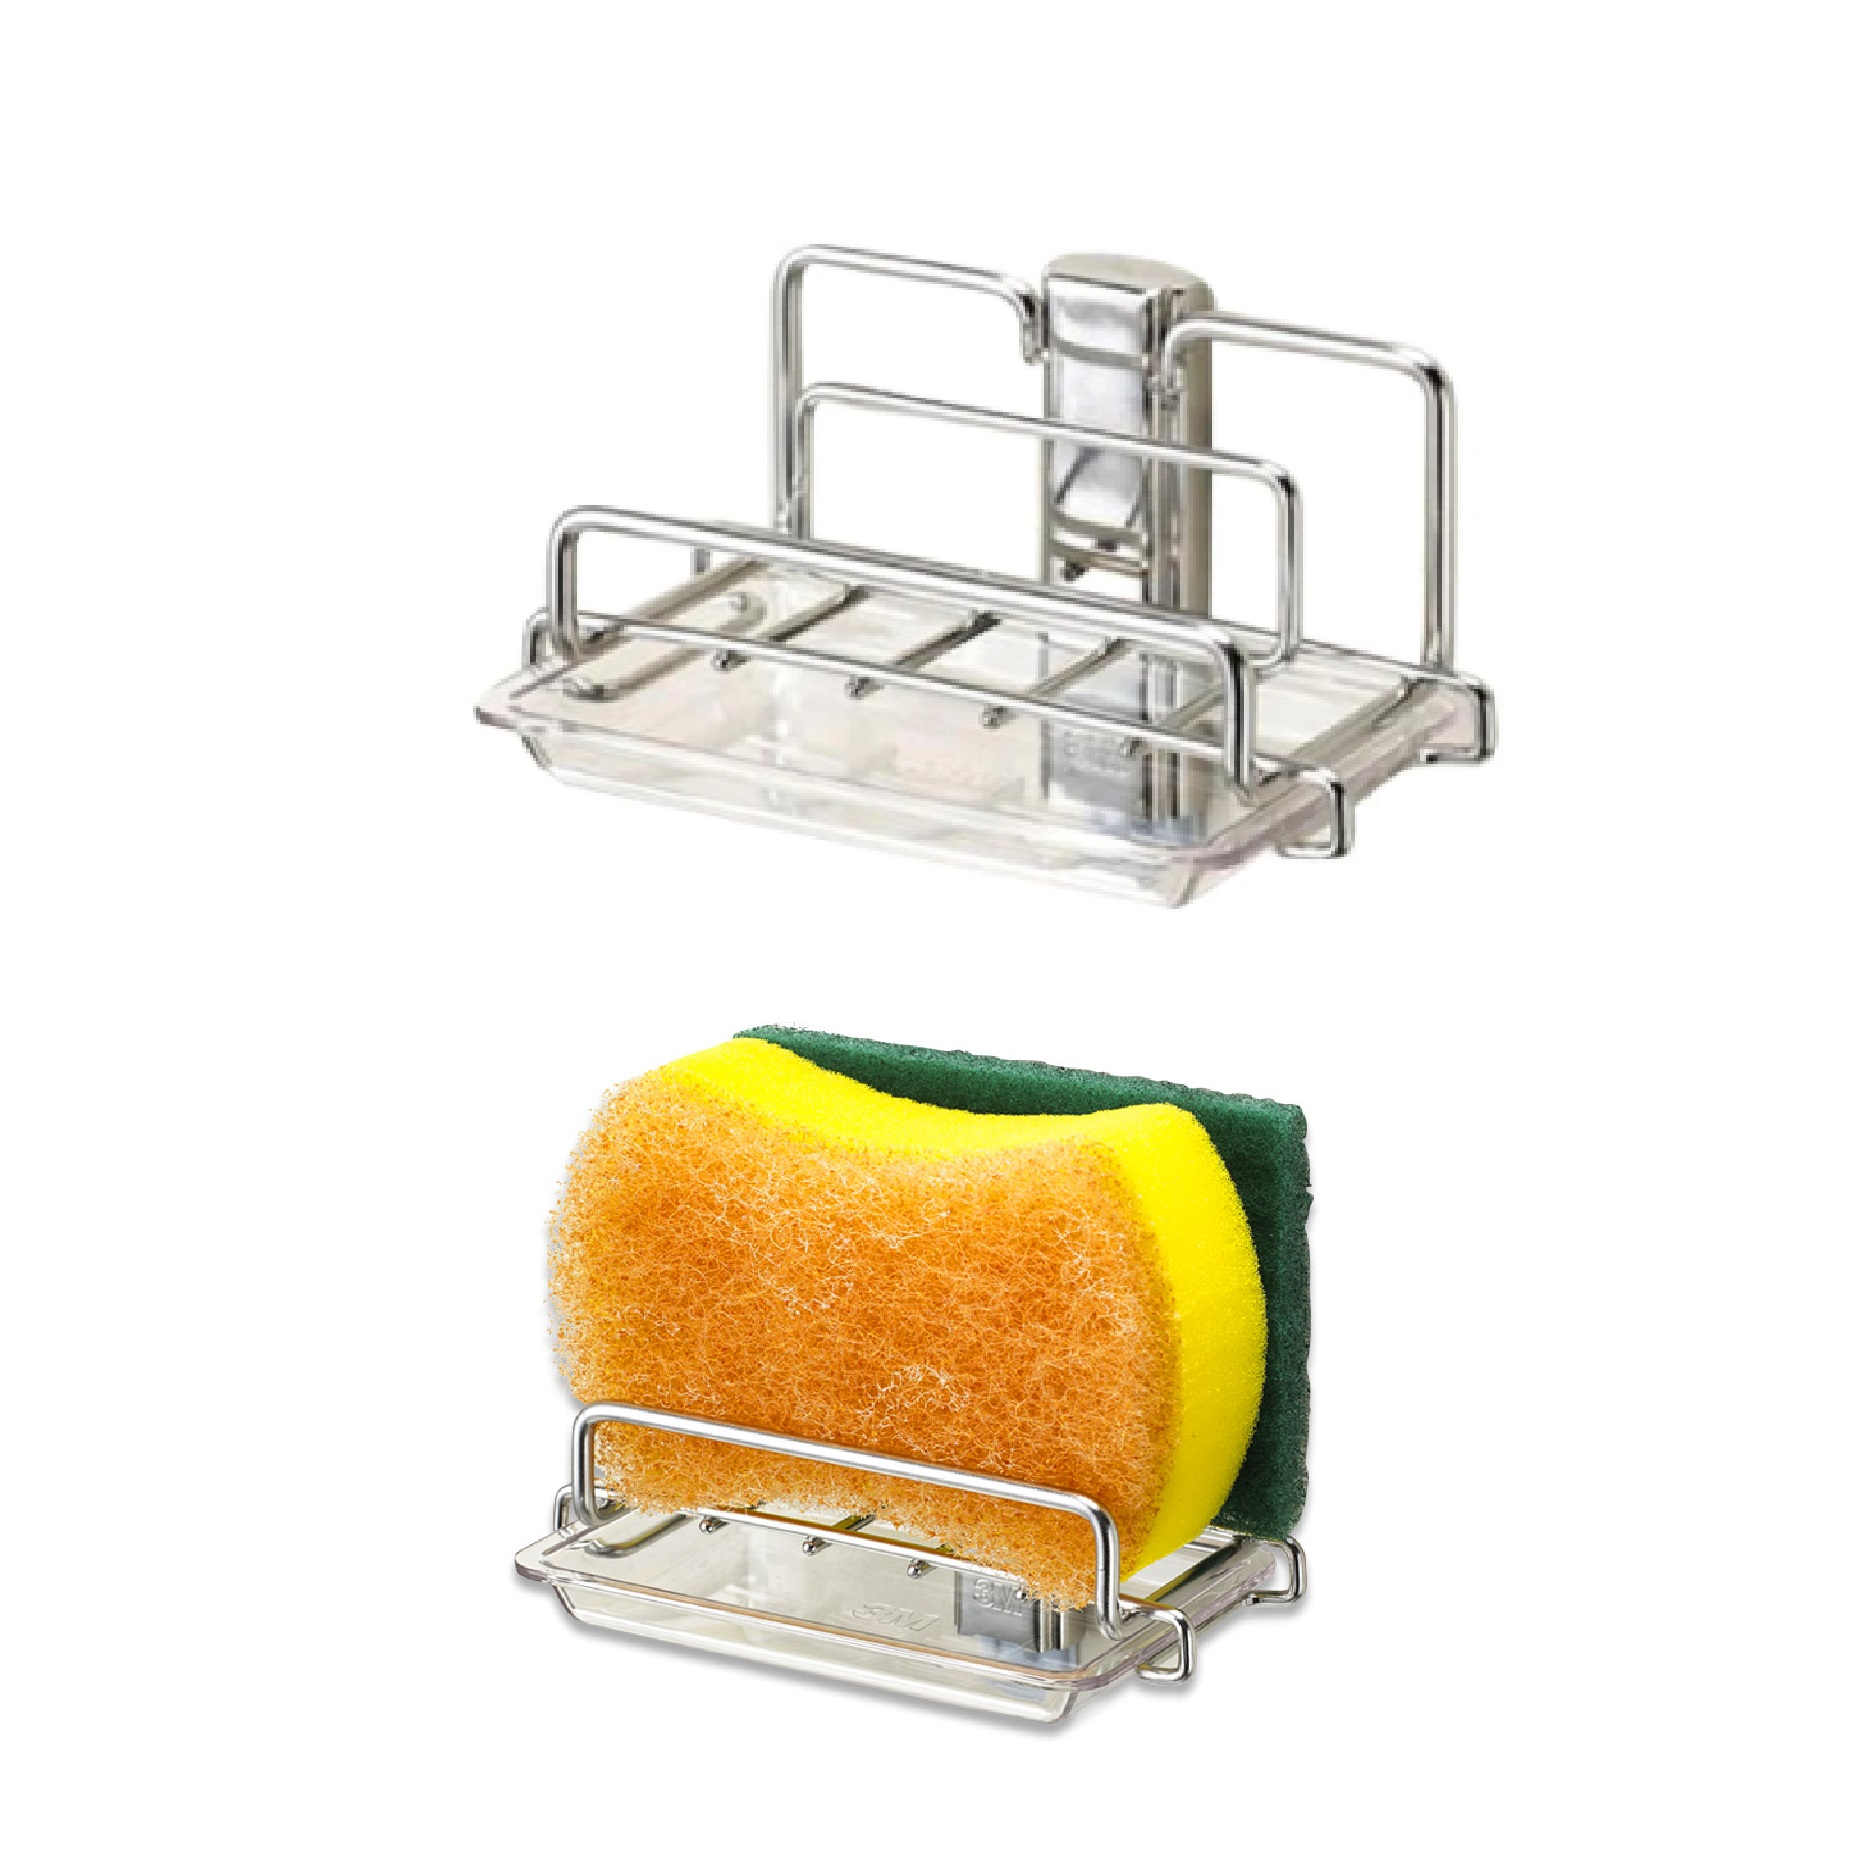 3M Stainless Steel Scouring Pad Holder